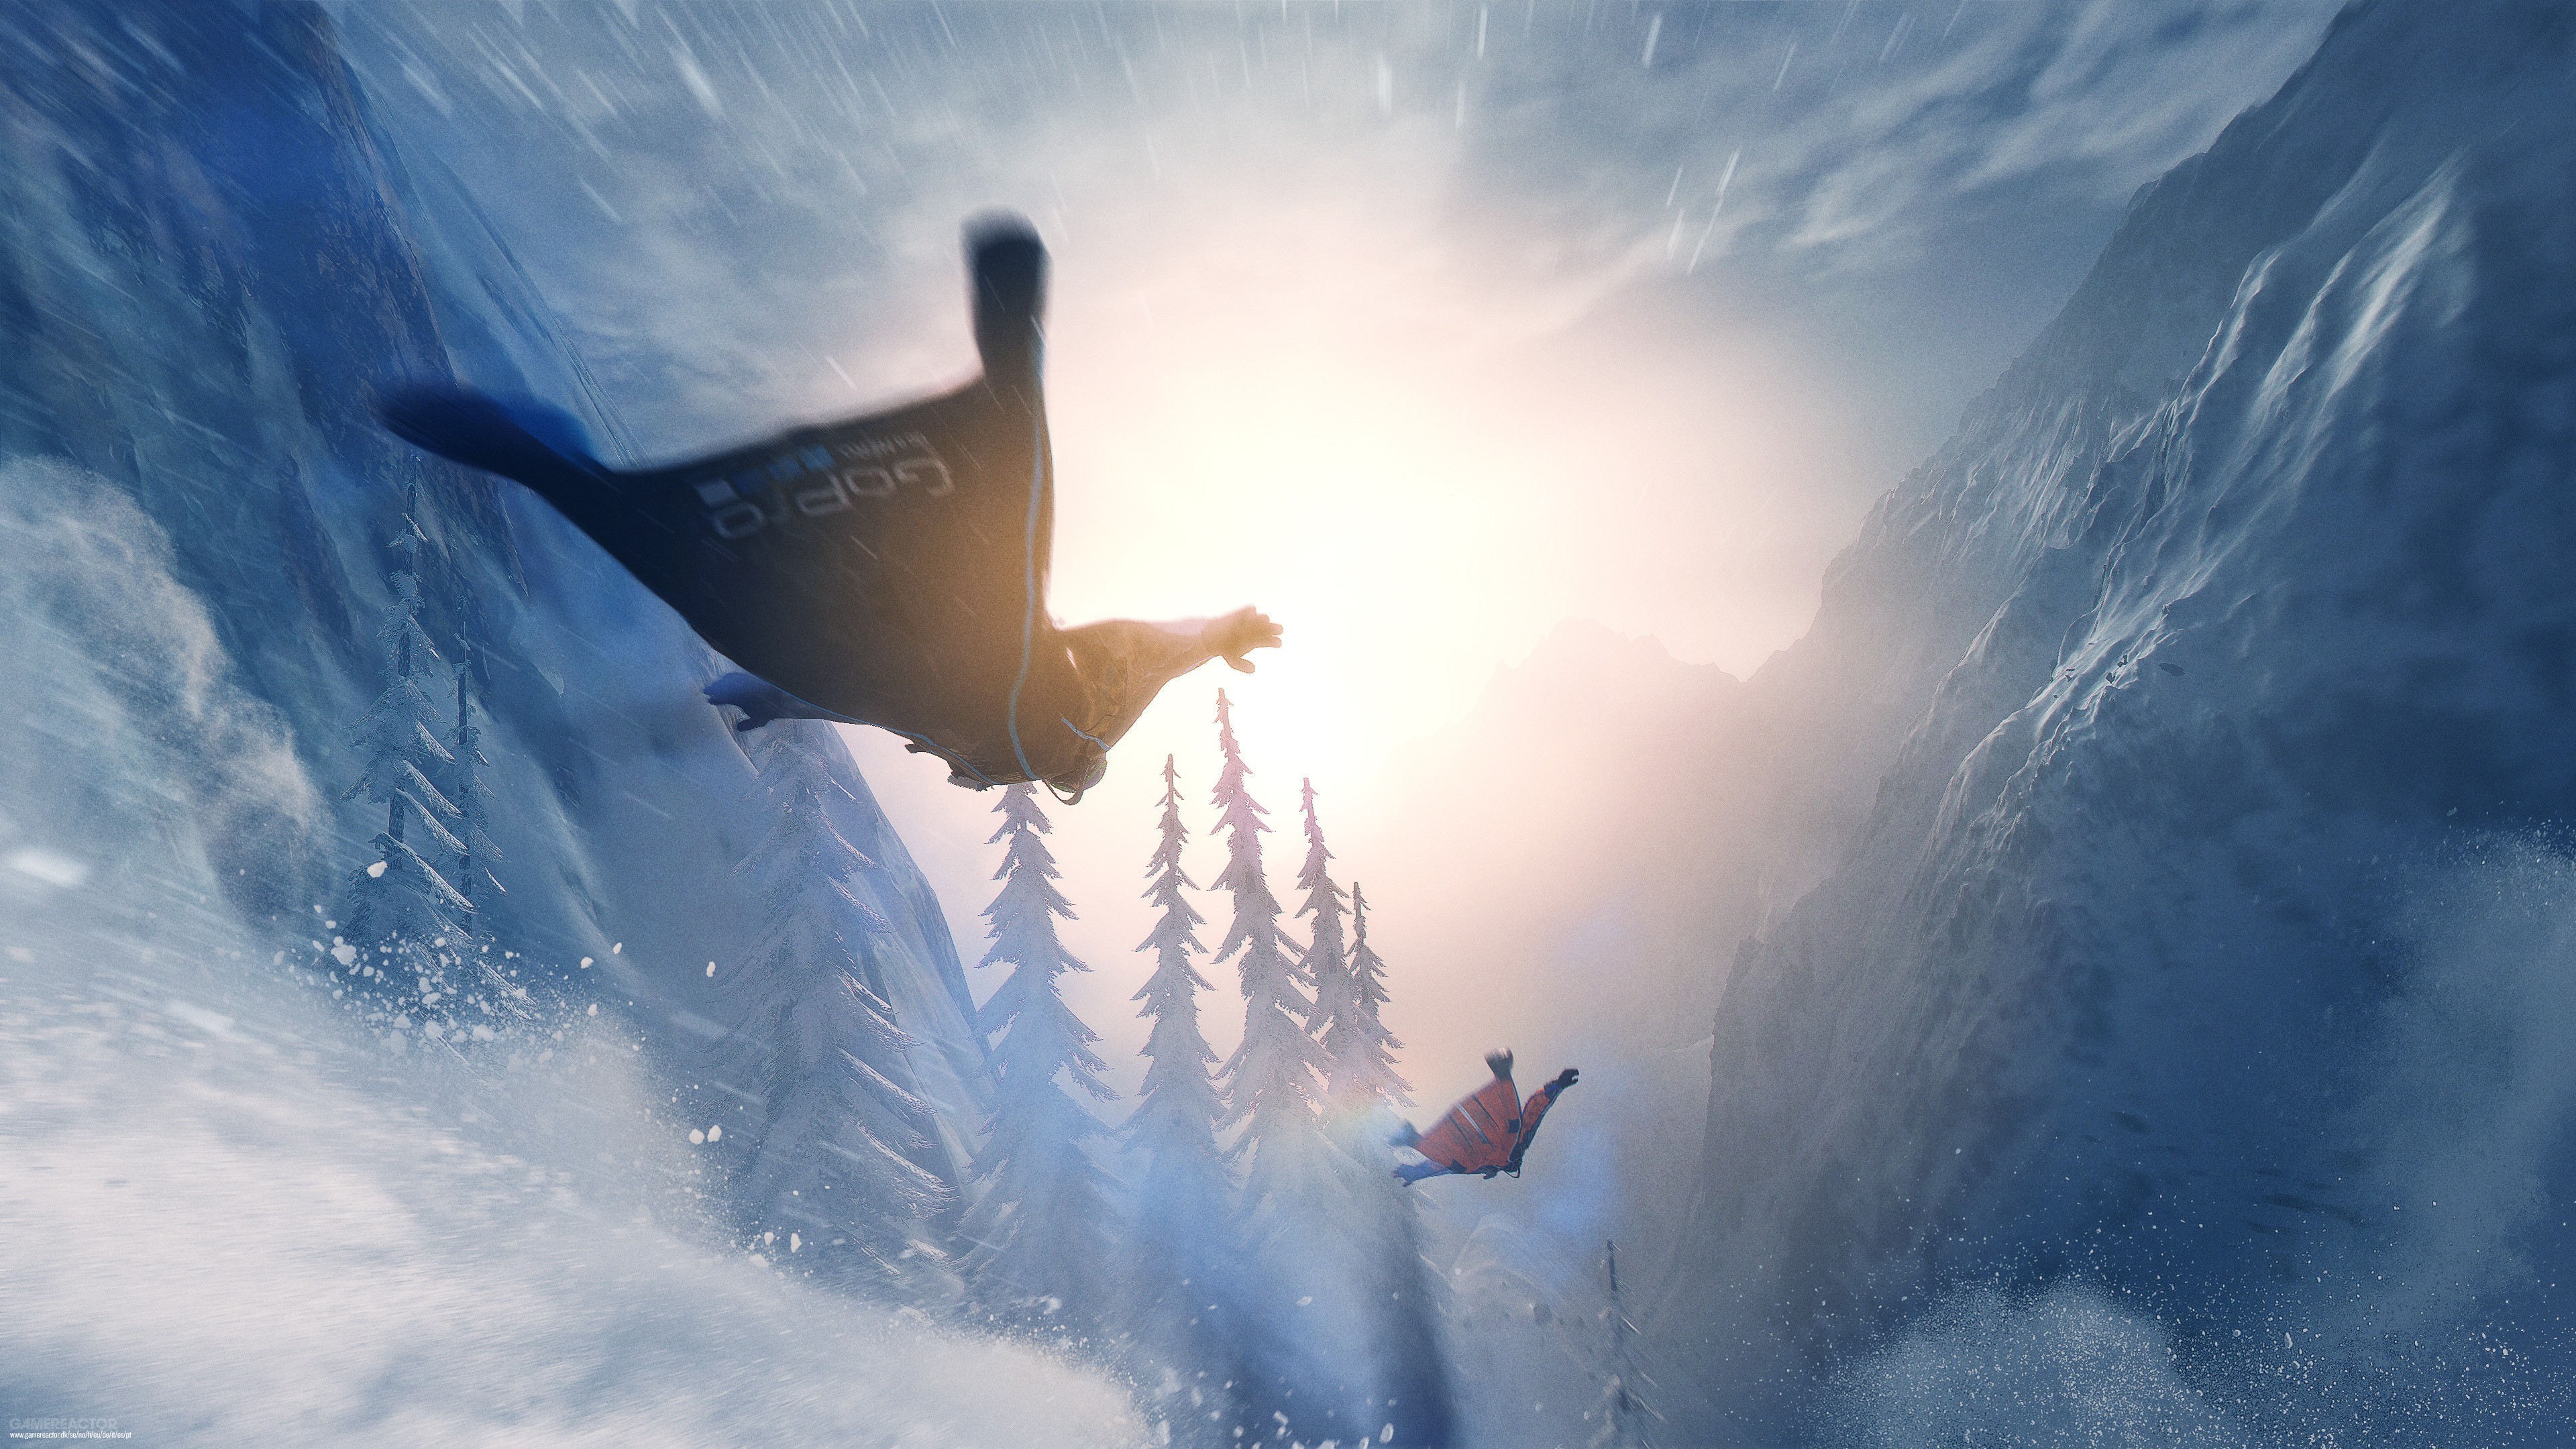 how to download steep open beta